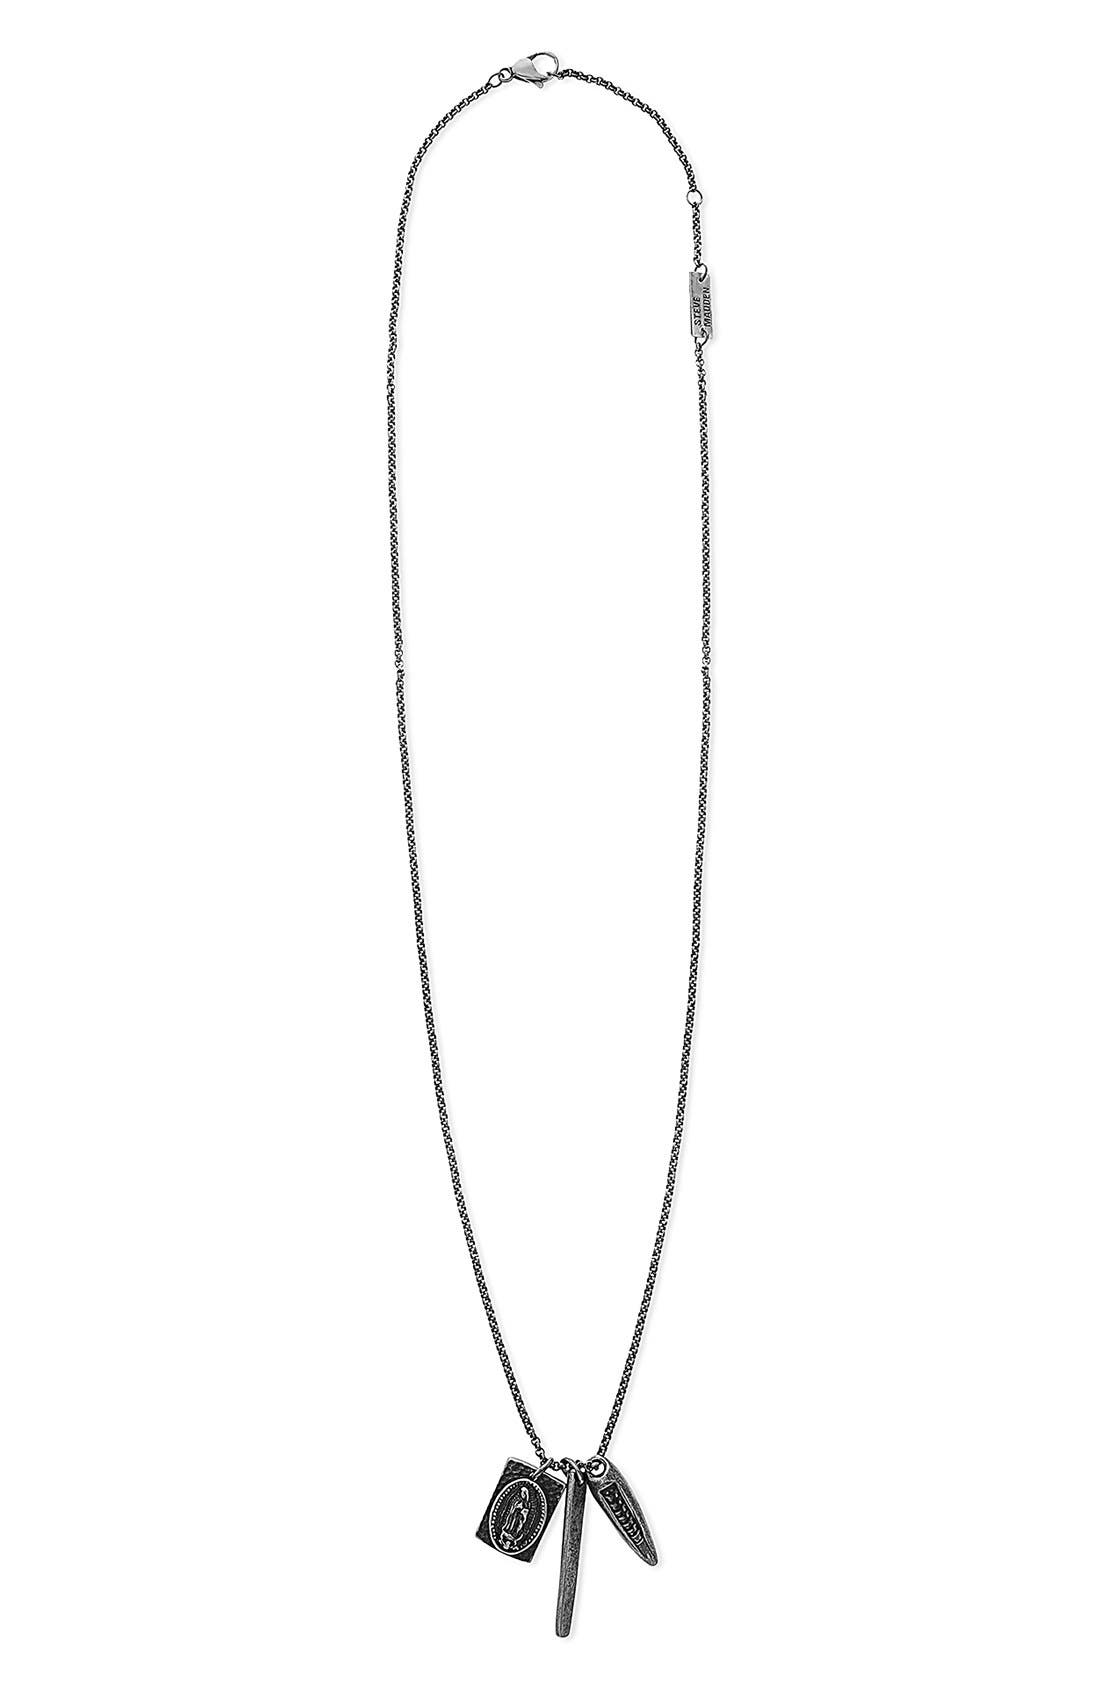 Alternate Image 1 Selected - Steve Madden Triple Pendant Necklace